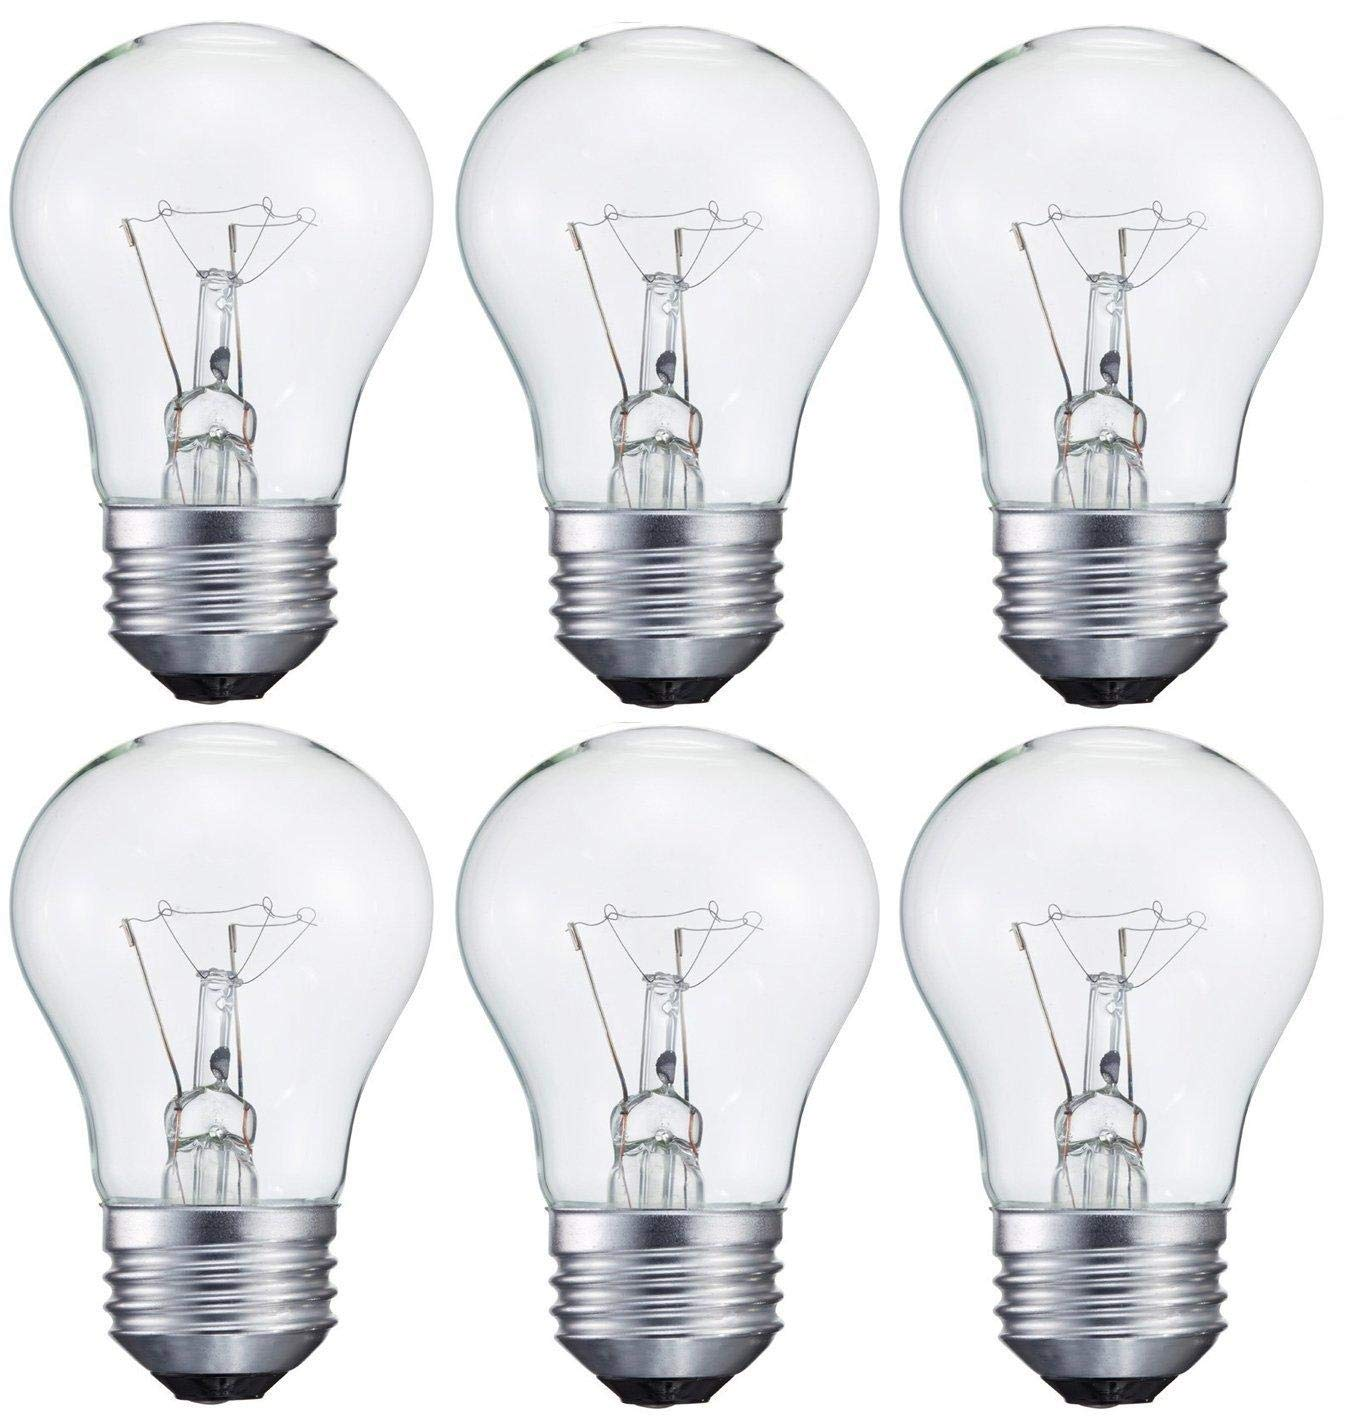 (6-Pack) 40-Watt Light Bulb for Appliance or Ceiling Fan, Incandescent, Crystal Clear, Dimmable, A15, Medium Standard Household Base E26, by Smart Value